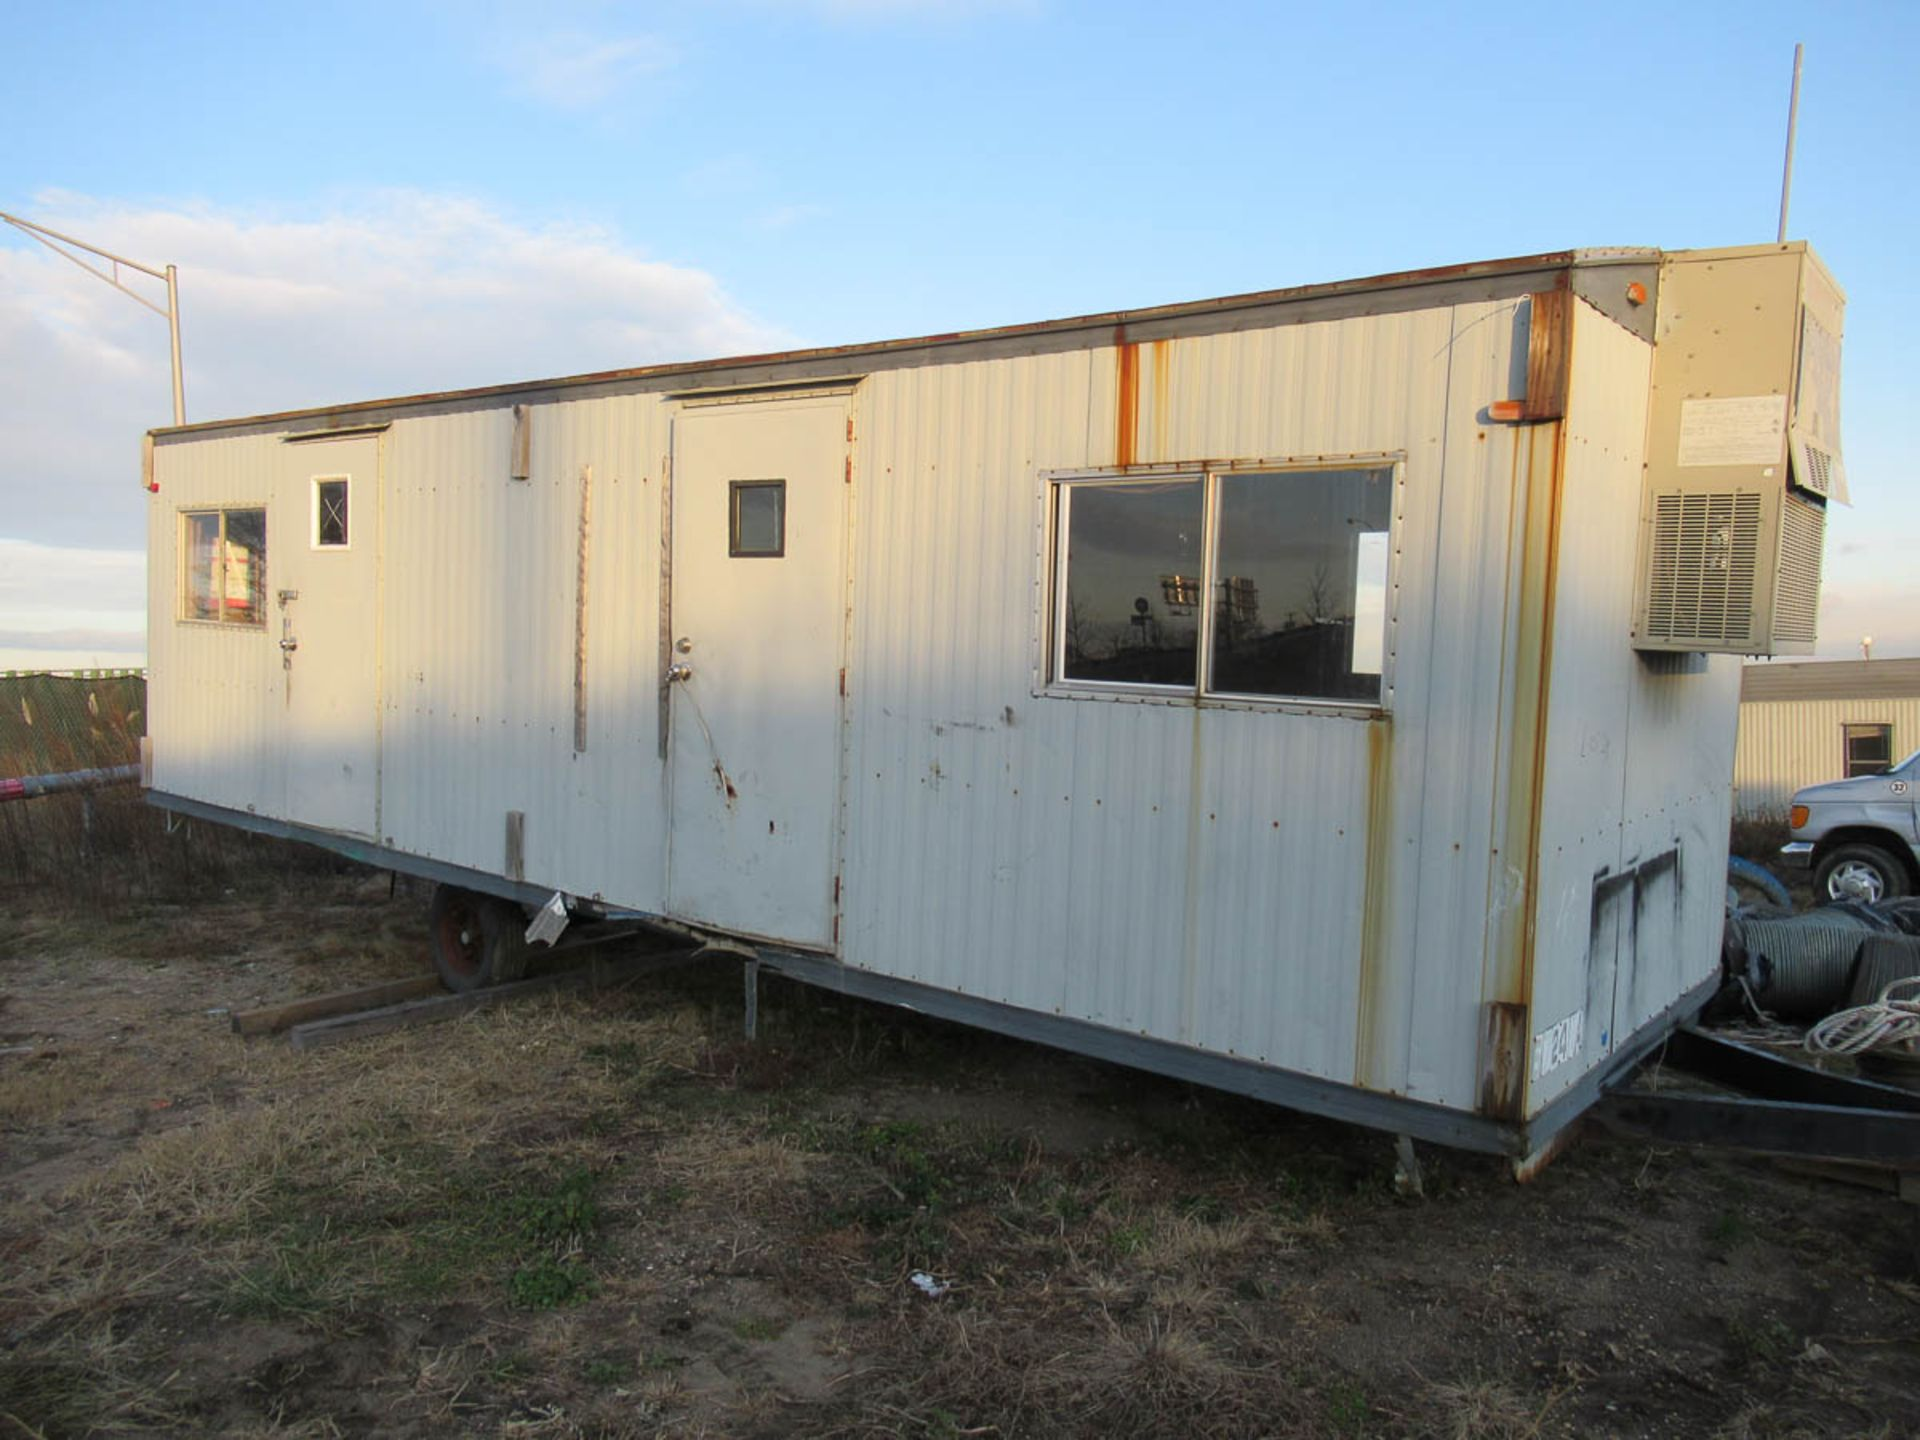 APPROXIMATELY 28' OFFICE TRAILER [LOCATED @ MARINE PARKWAY BRIDGE - QUEENS SIDE]